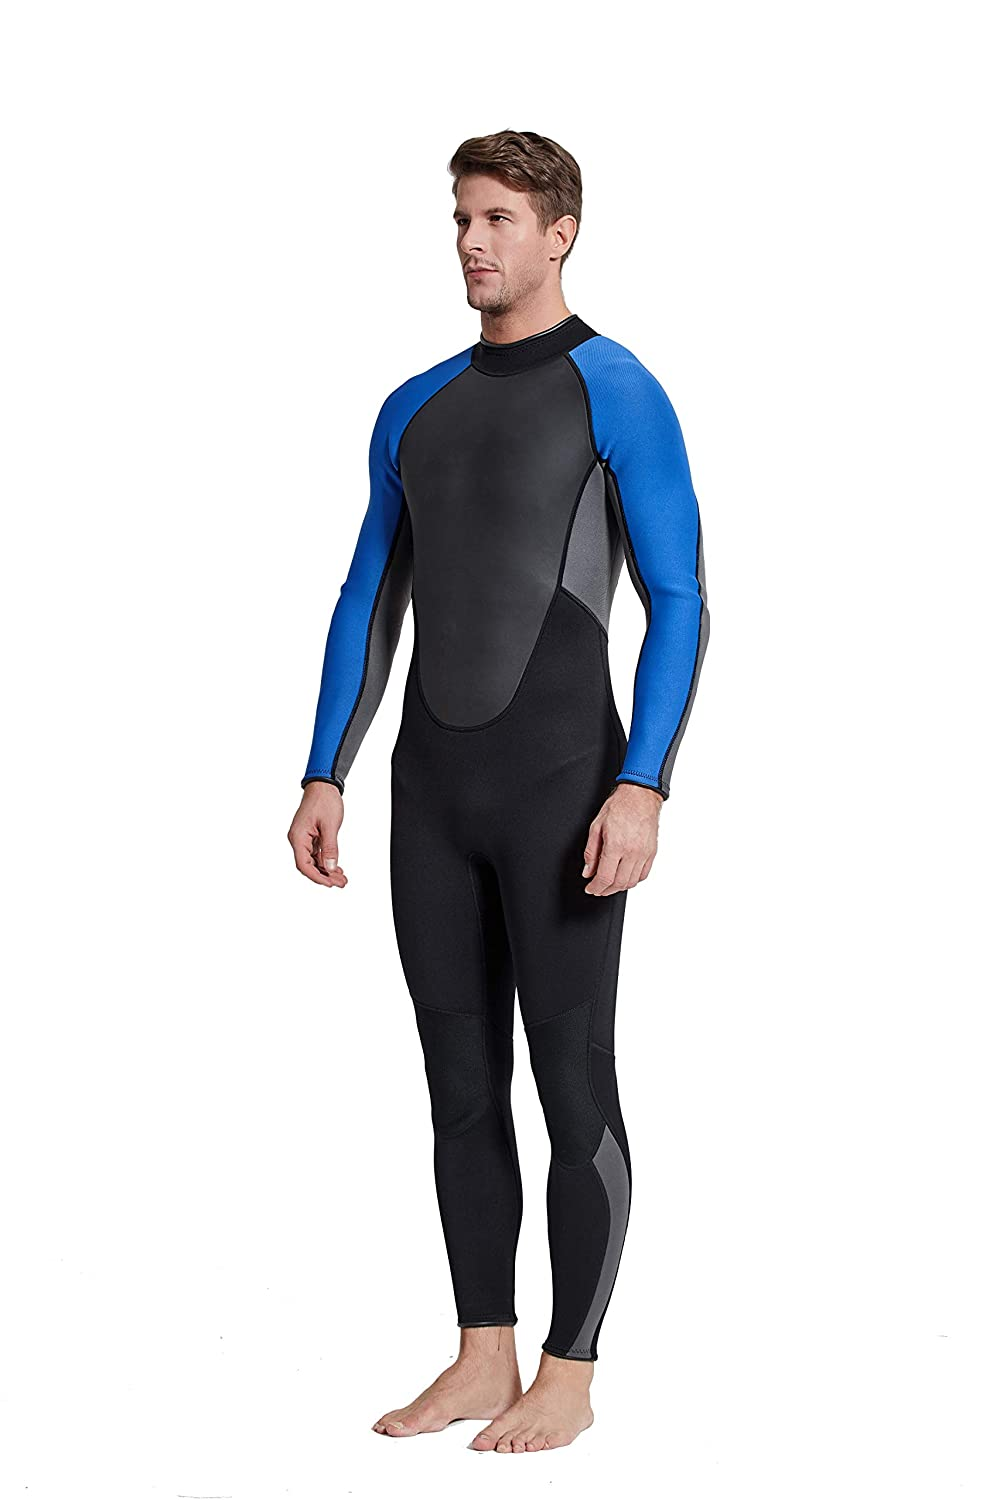 Wetsuit Men 3mm Neoprene Full Suits Long Sleeve Scuba Surfing Swimming Diving Swimsuits Keep Warm Back Zip for Water Sports